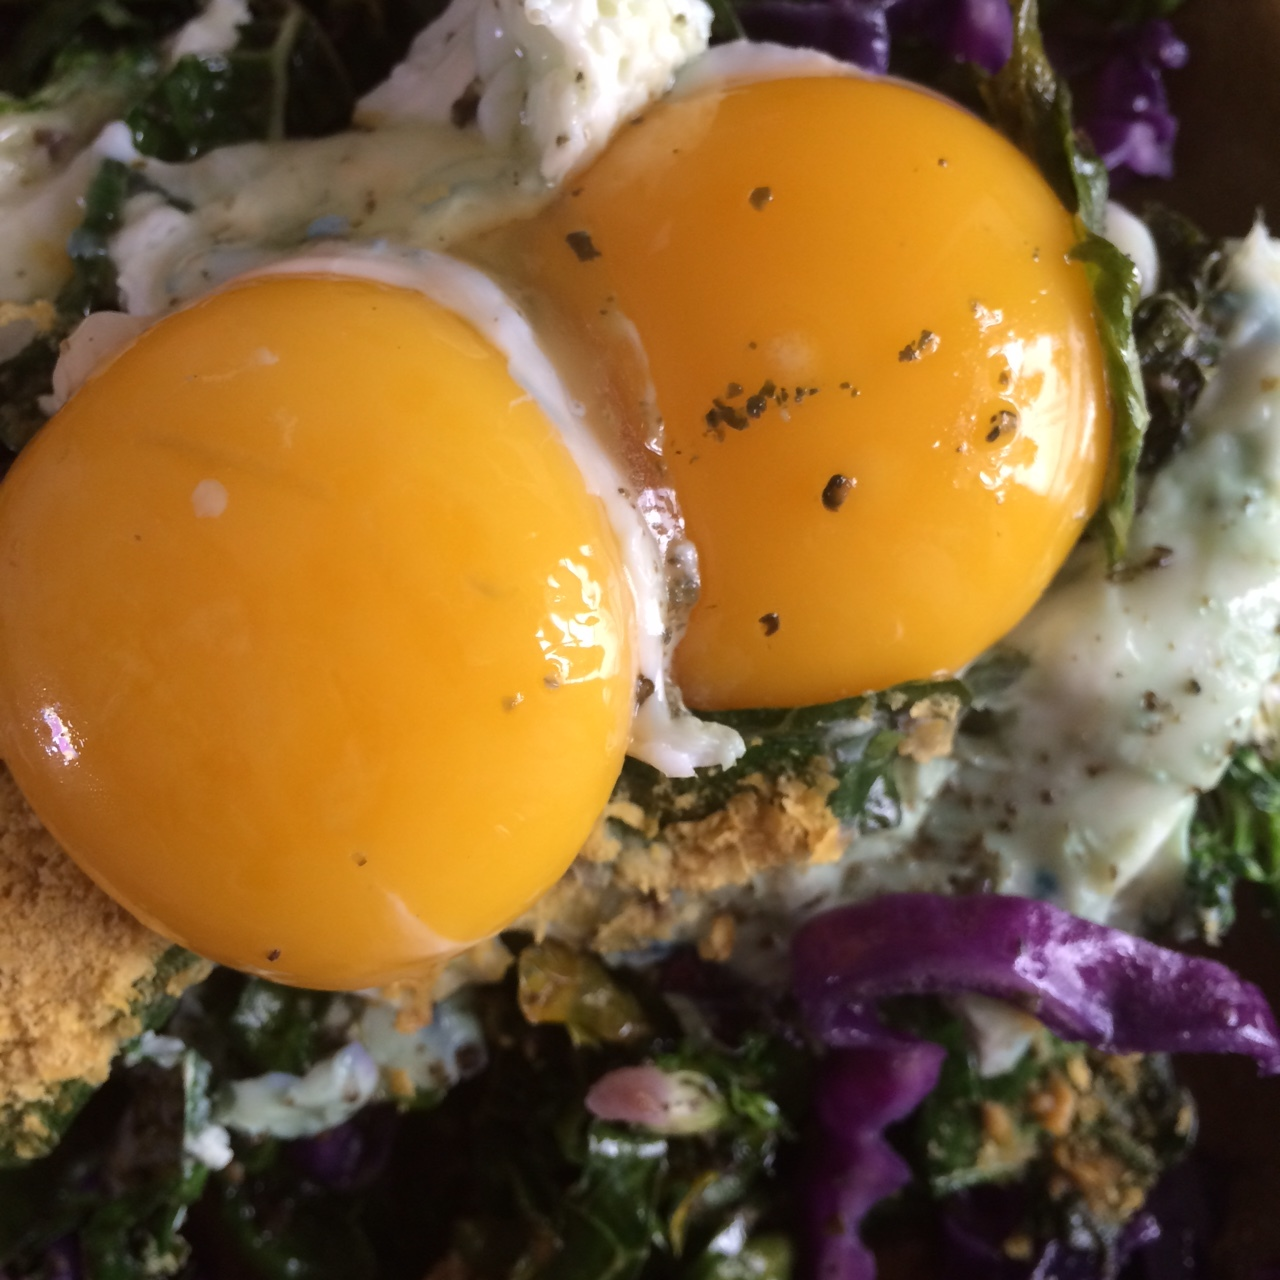 Would you eat raw egg yolks? — NATIVE PALMS NUTRITION